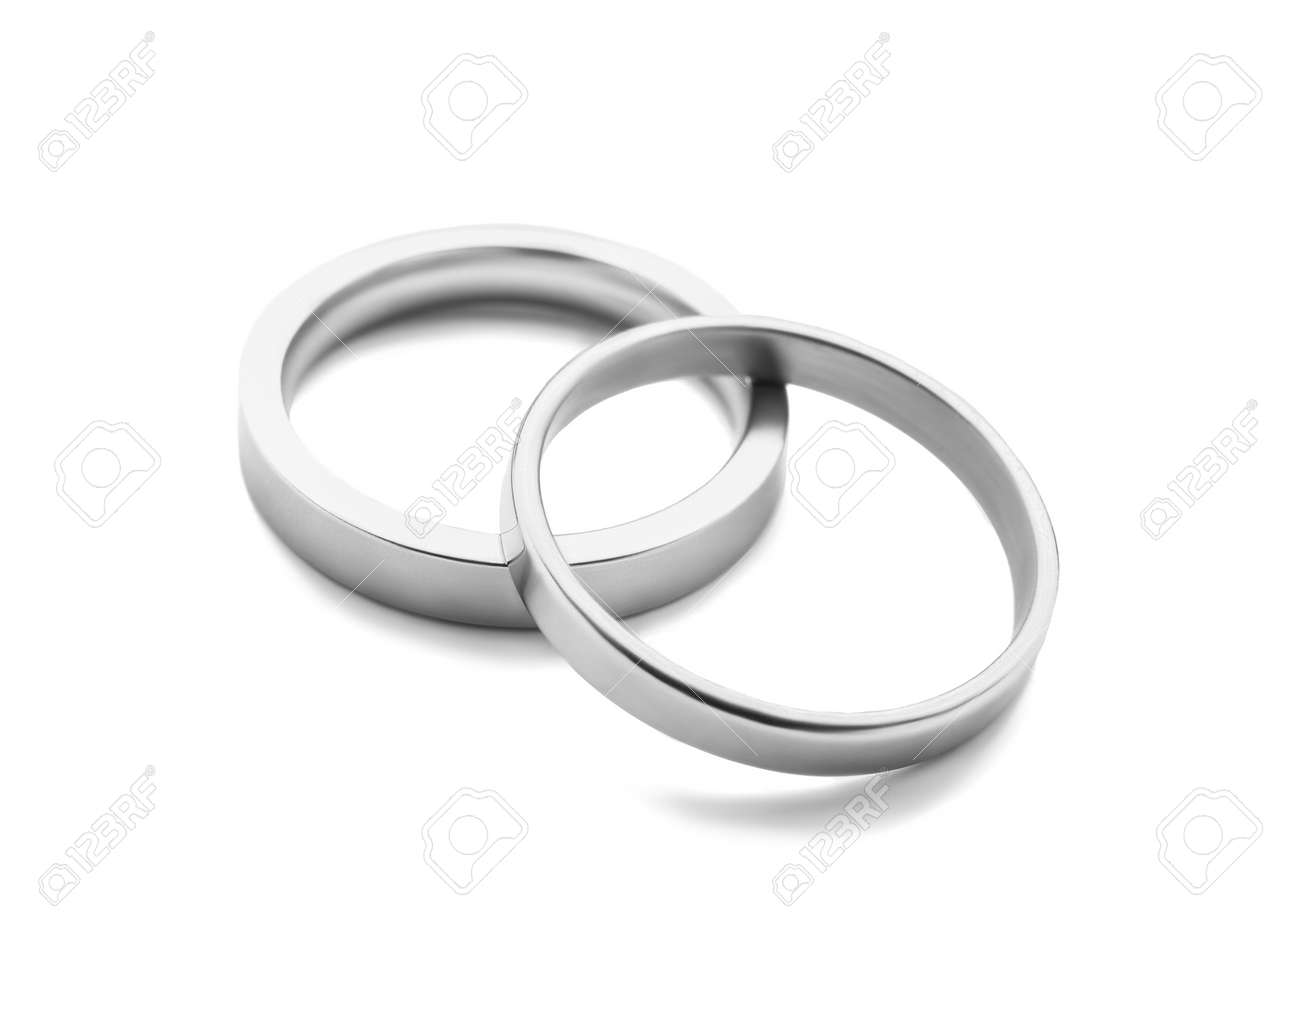 Pair of wedding rings on white background - 165834237